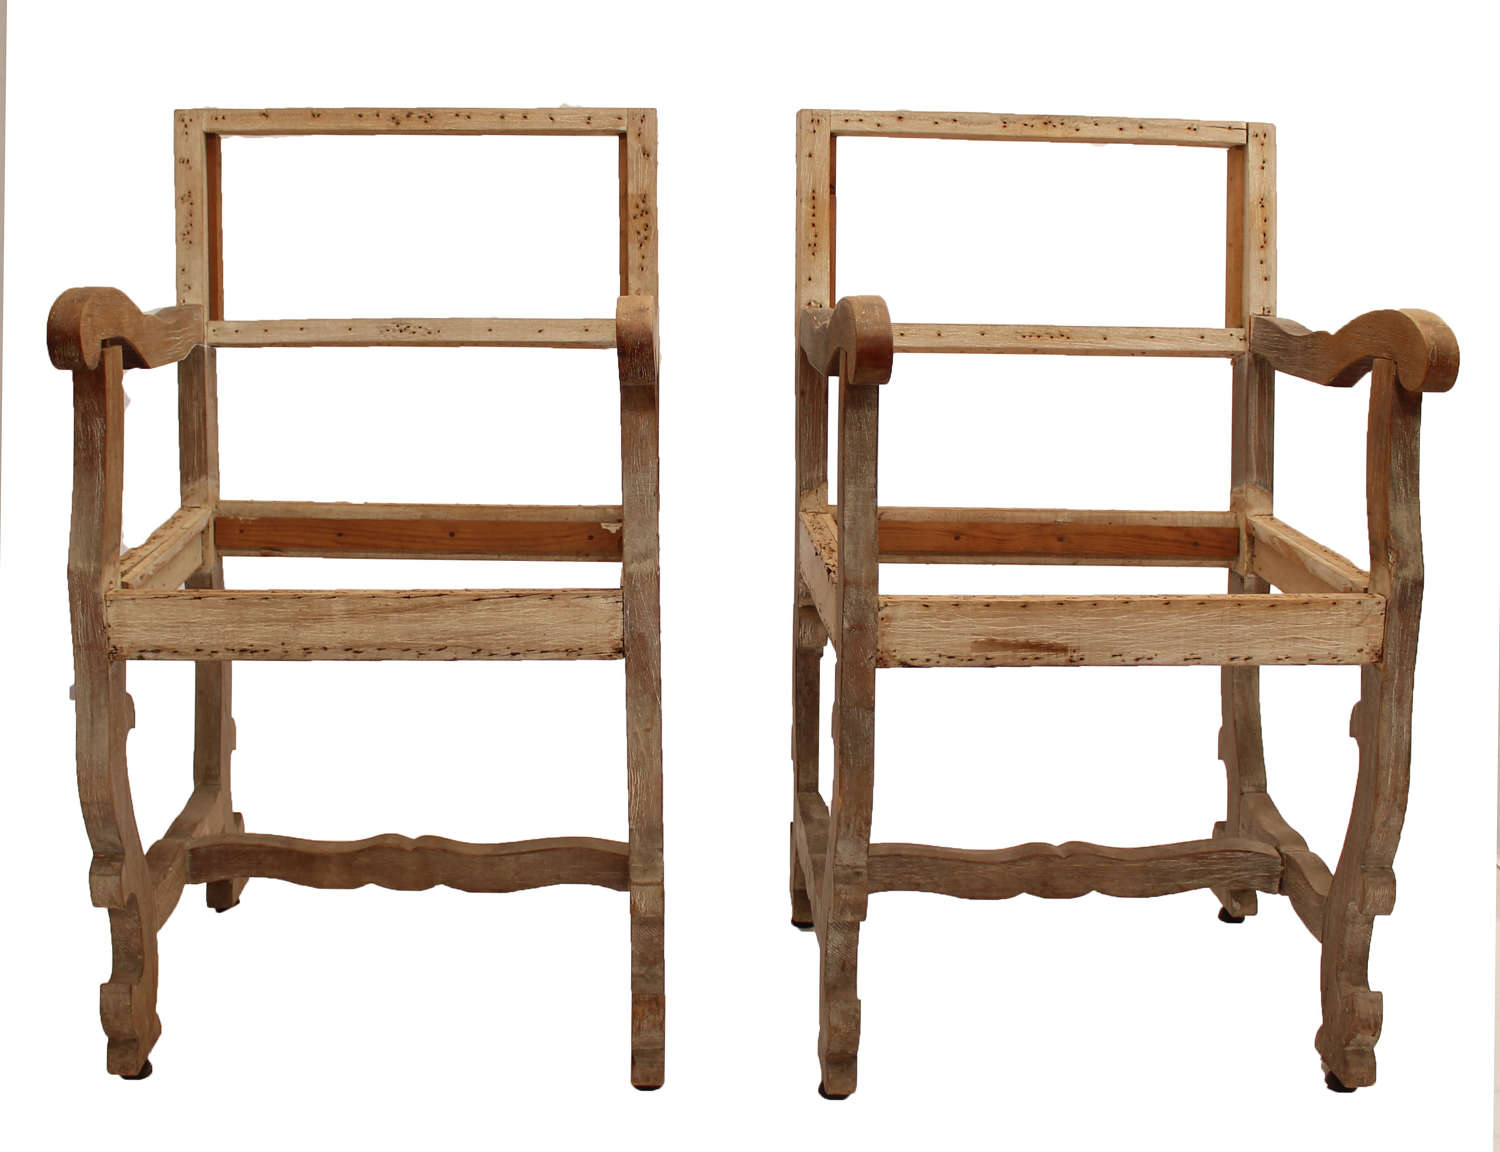 Pair of 19c Limed Oak Chairs